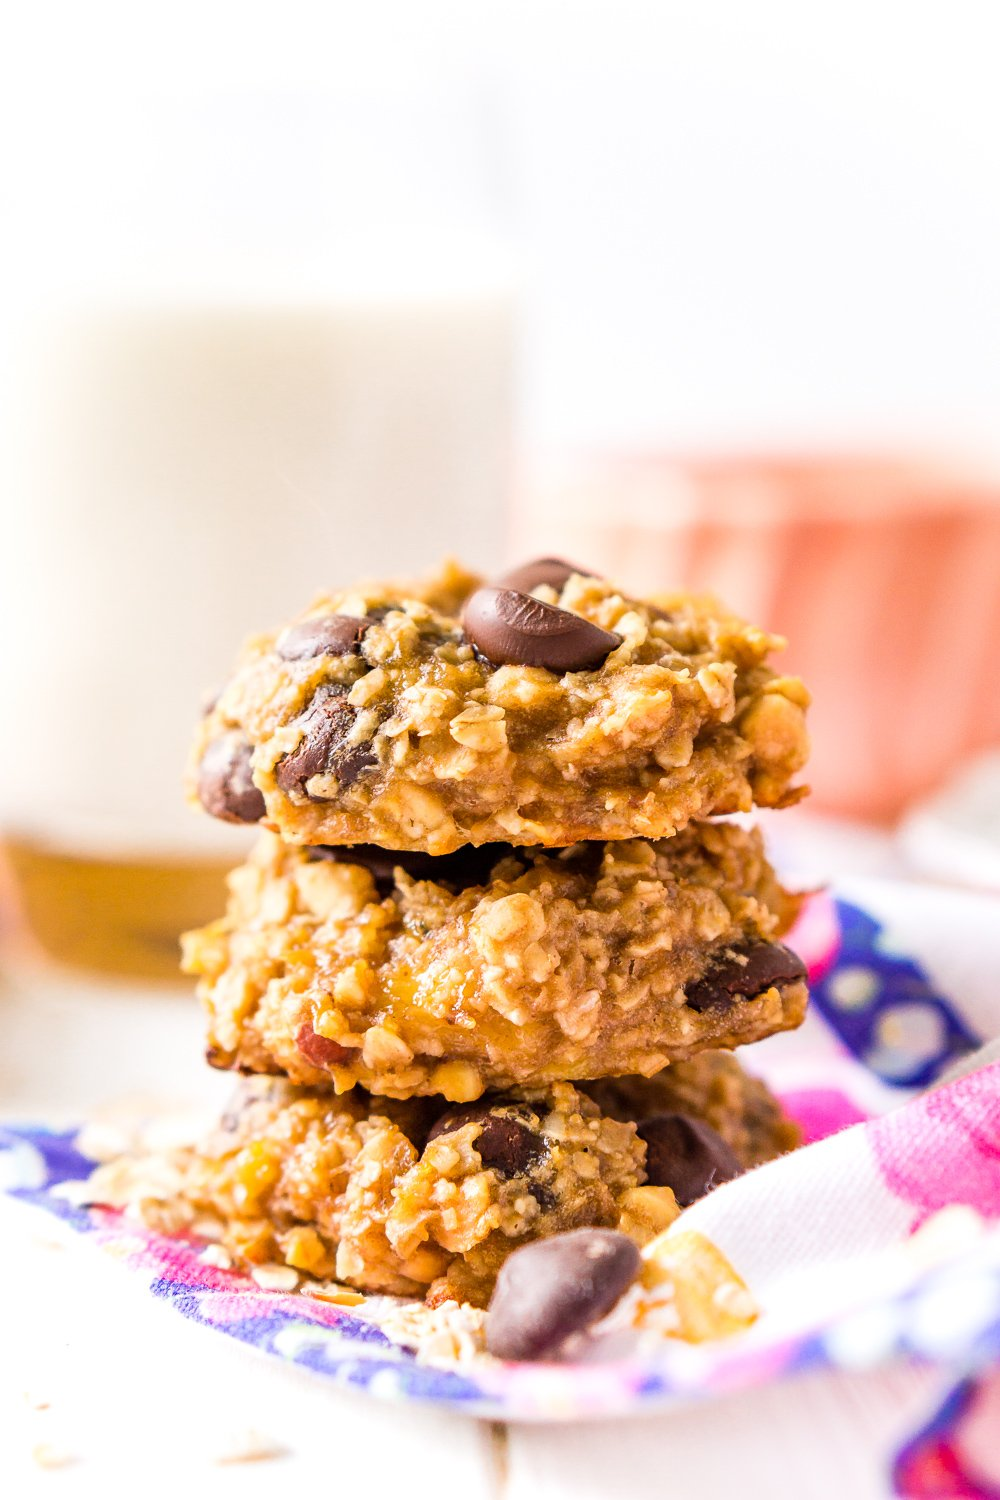 Banana Oatmeal Cookies with chocolate chip stacked three high with milk in background.